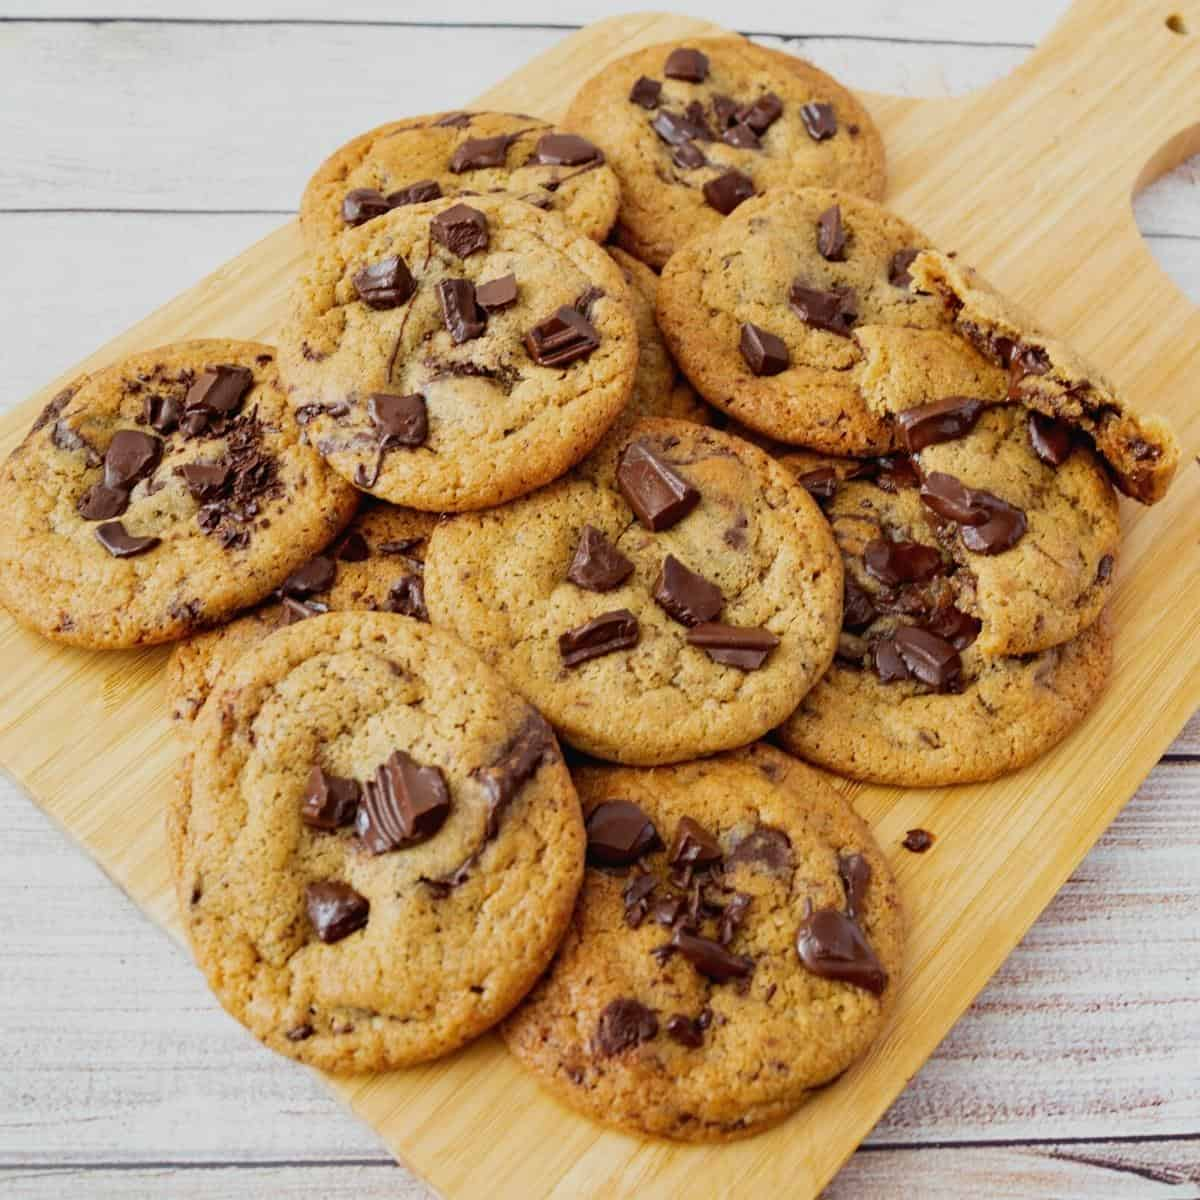 A wooden board with chocolate cookies.